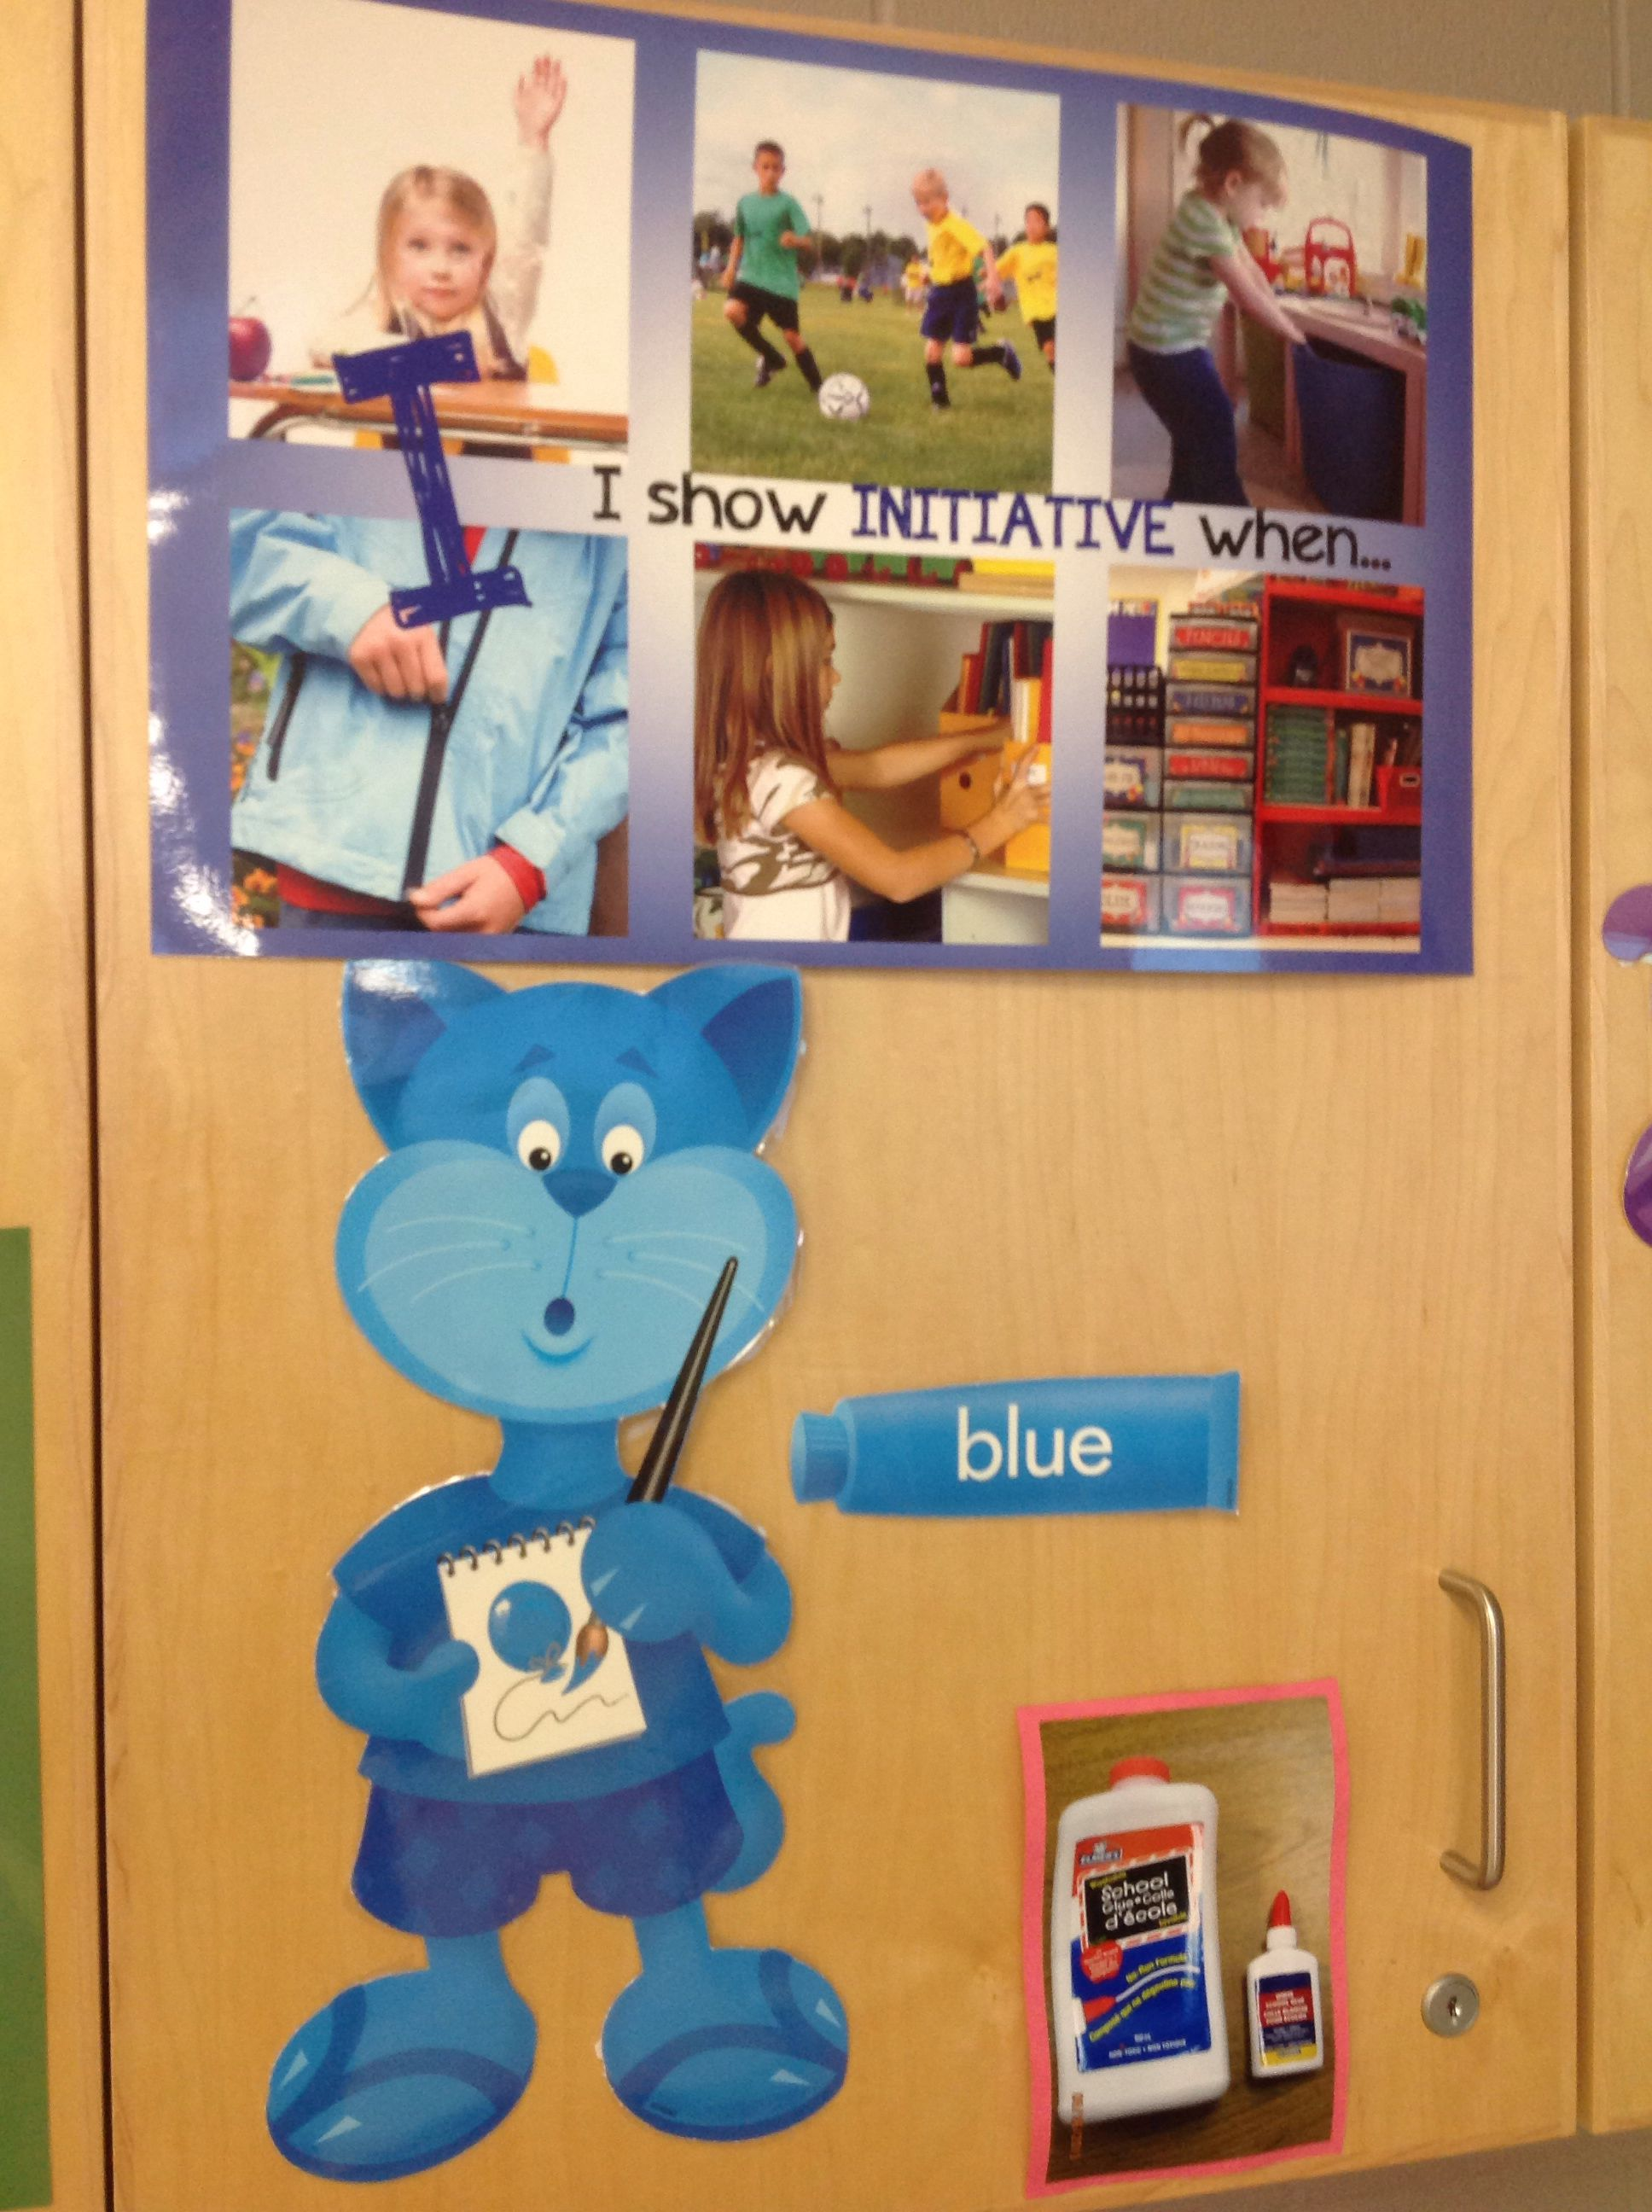 Initiative poster in the FDK classroom. | Skills to learn ...